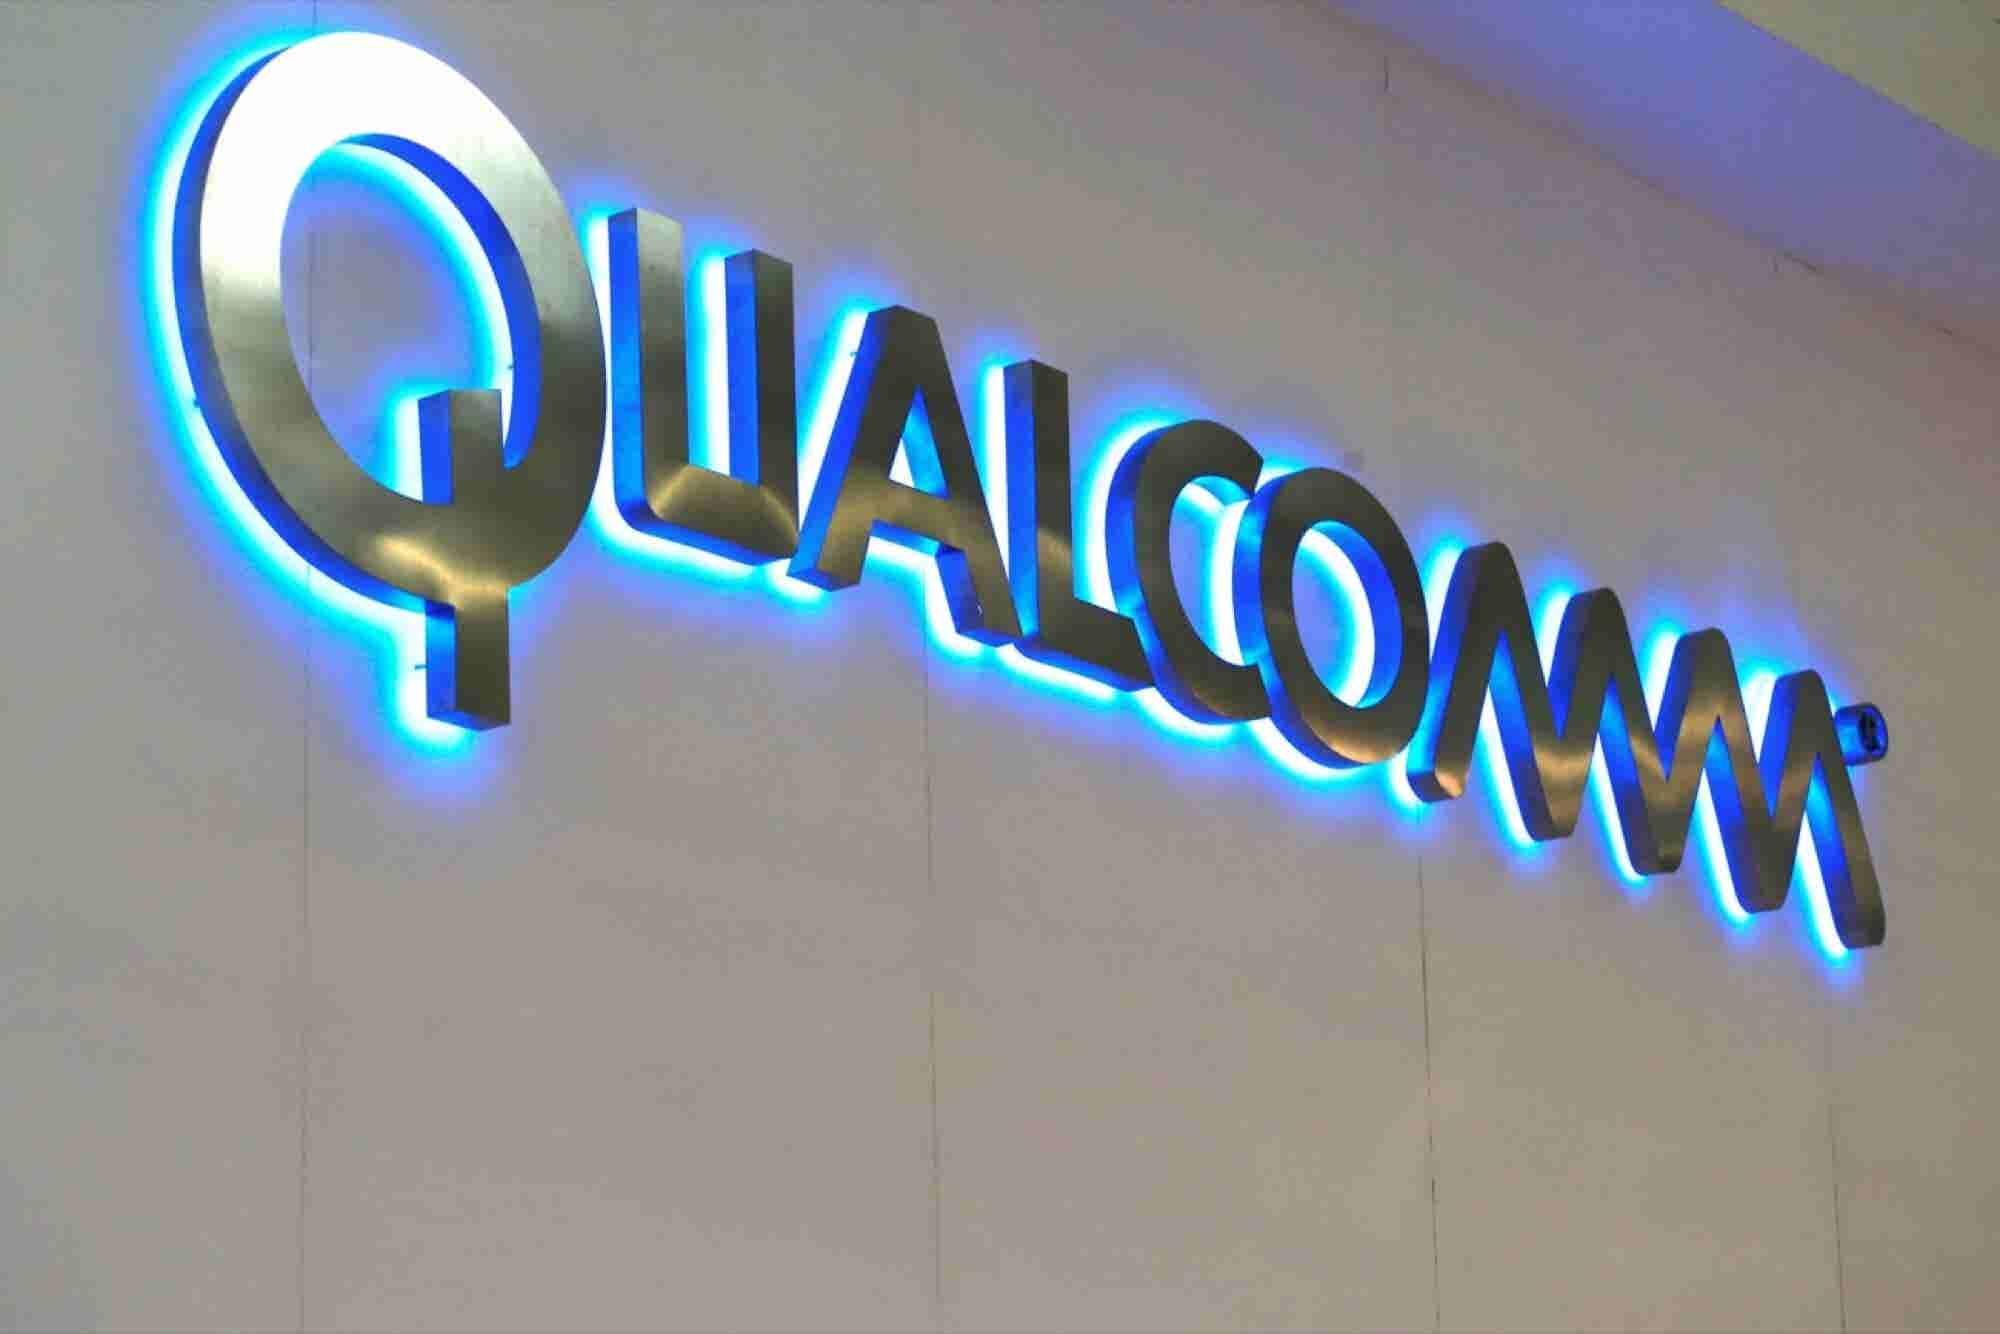 Qualcomm, in Deals With Apple and Others, Violated Competition Laws, Says FTC